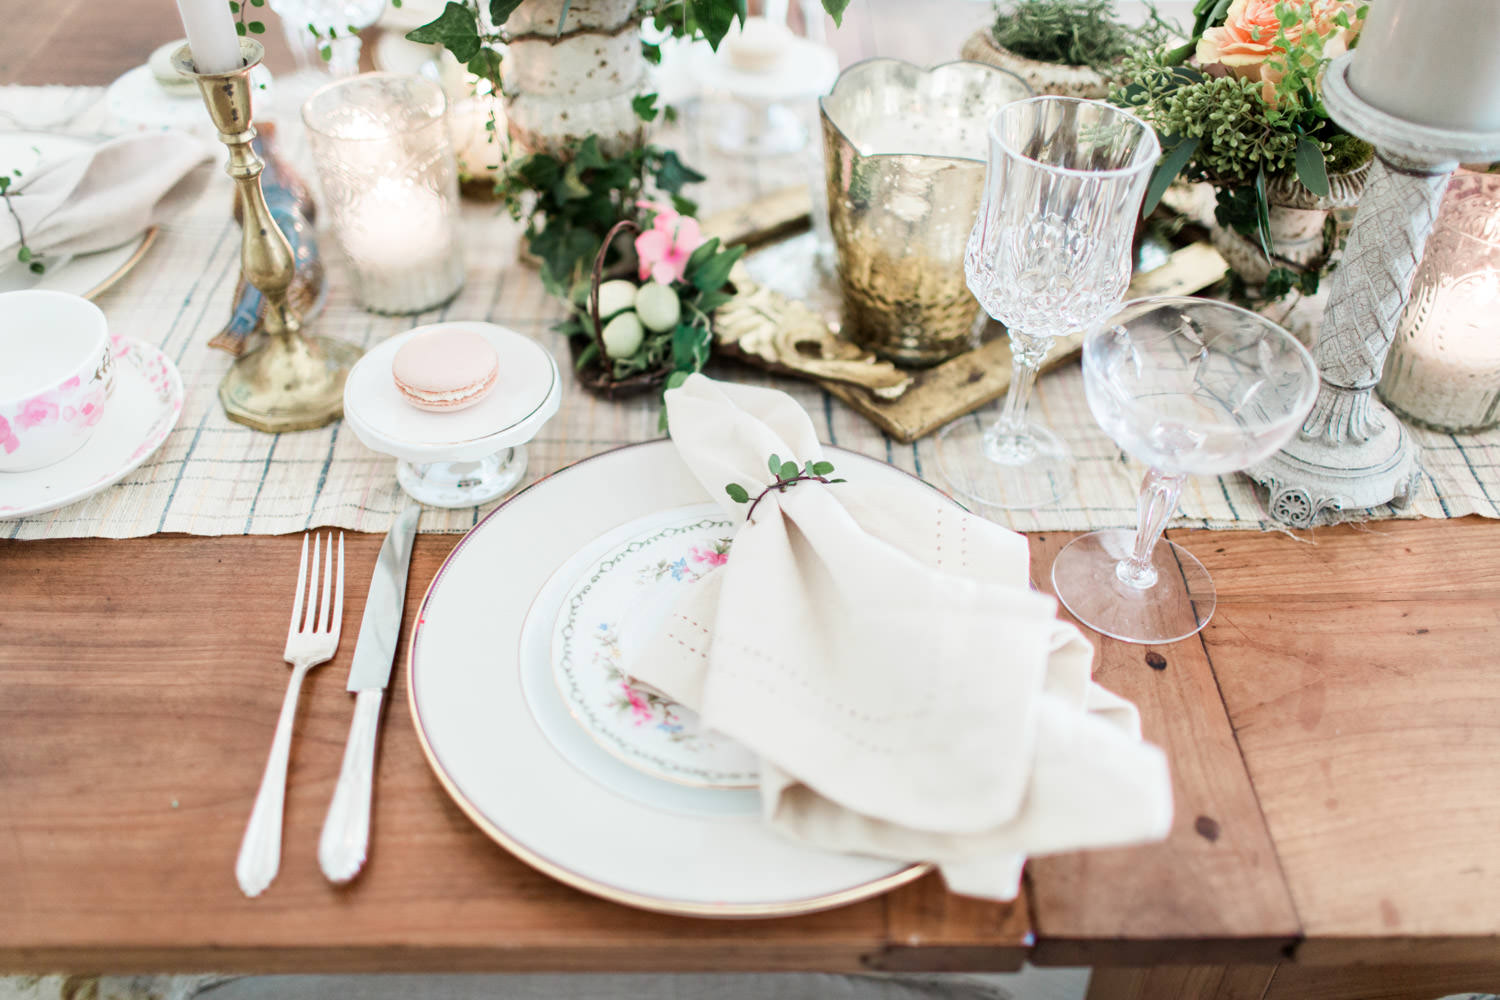 Neutral place setting ideas with napkin tied with greenery and macaron, Cavin Elizabeth Photography